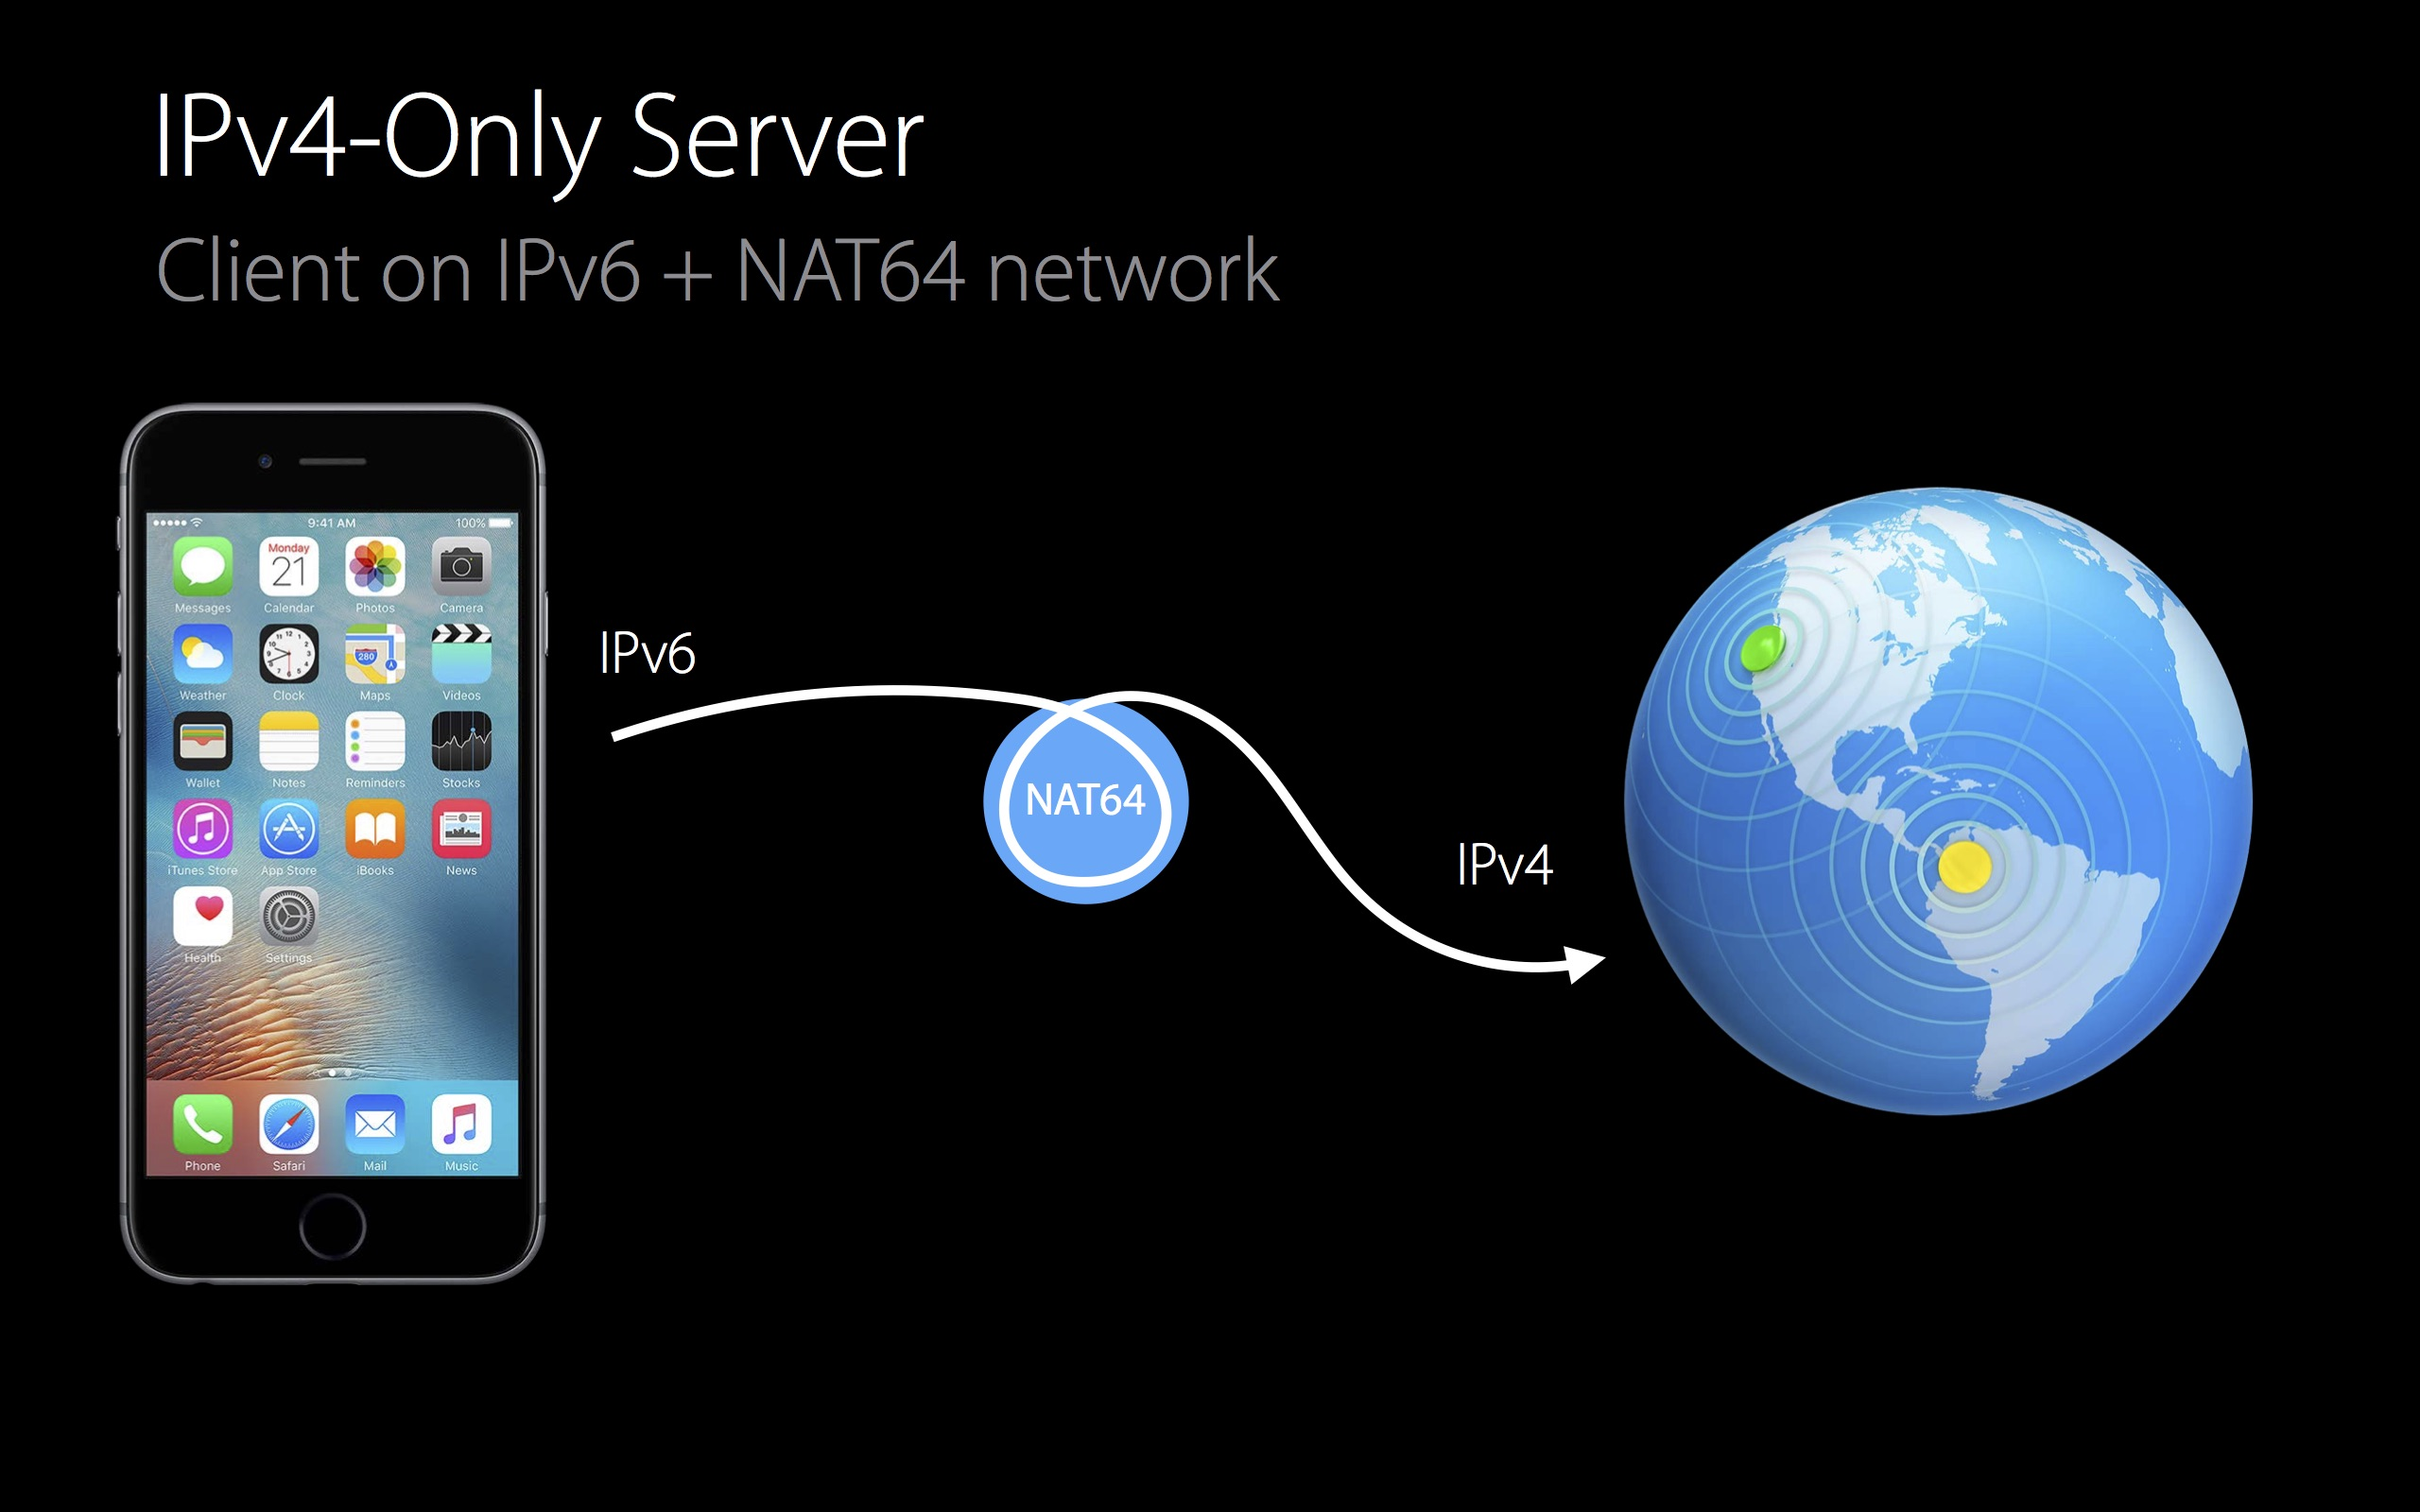 how to set internet to only use ipv4